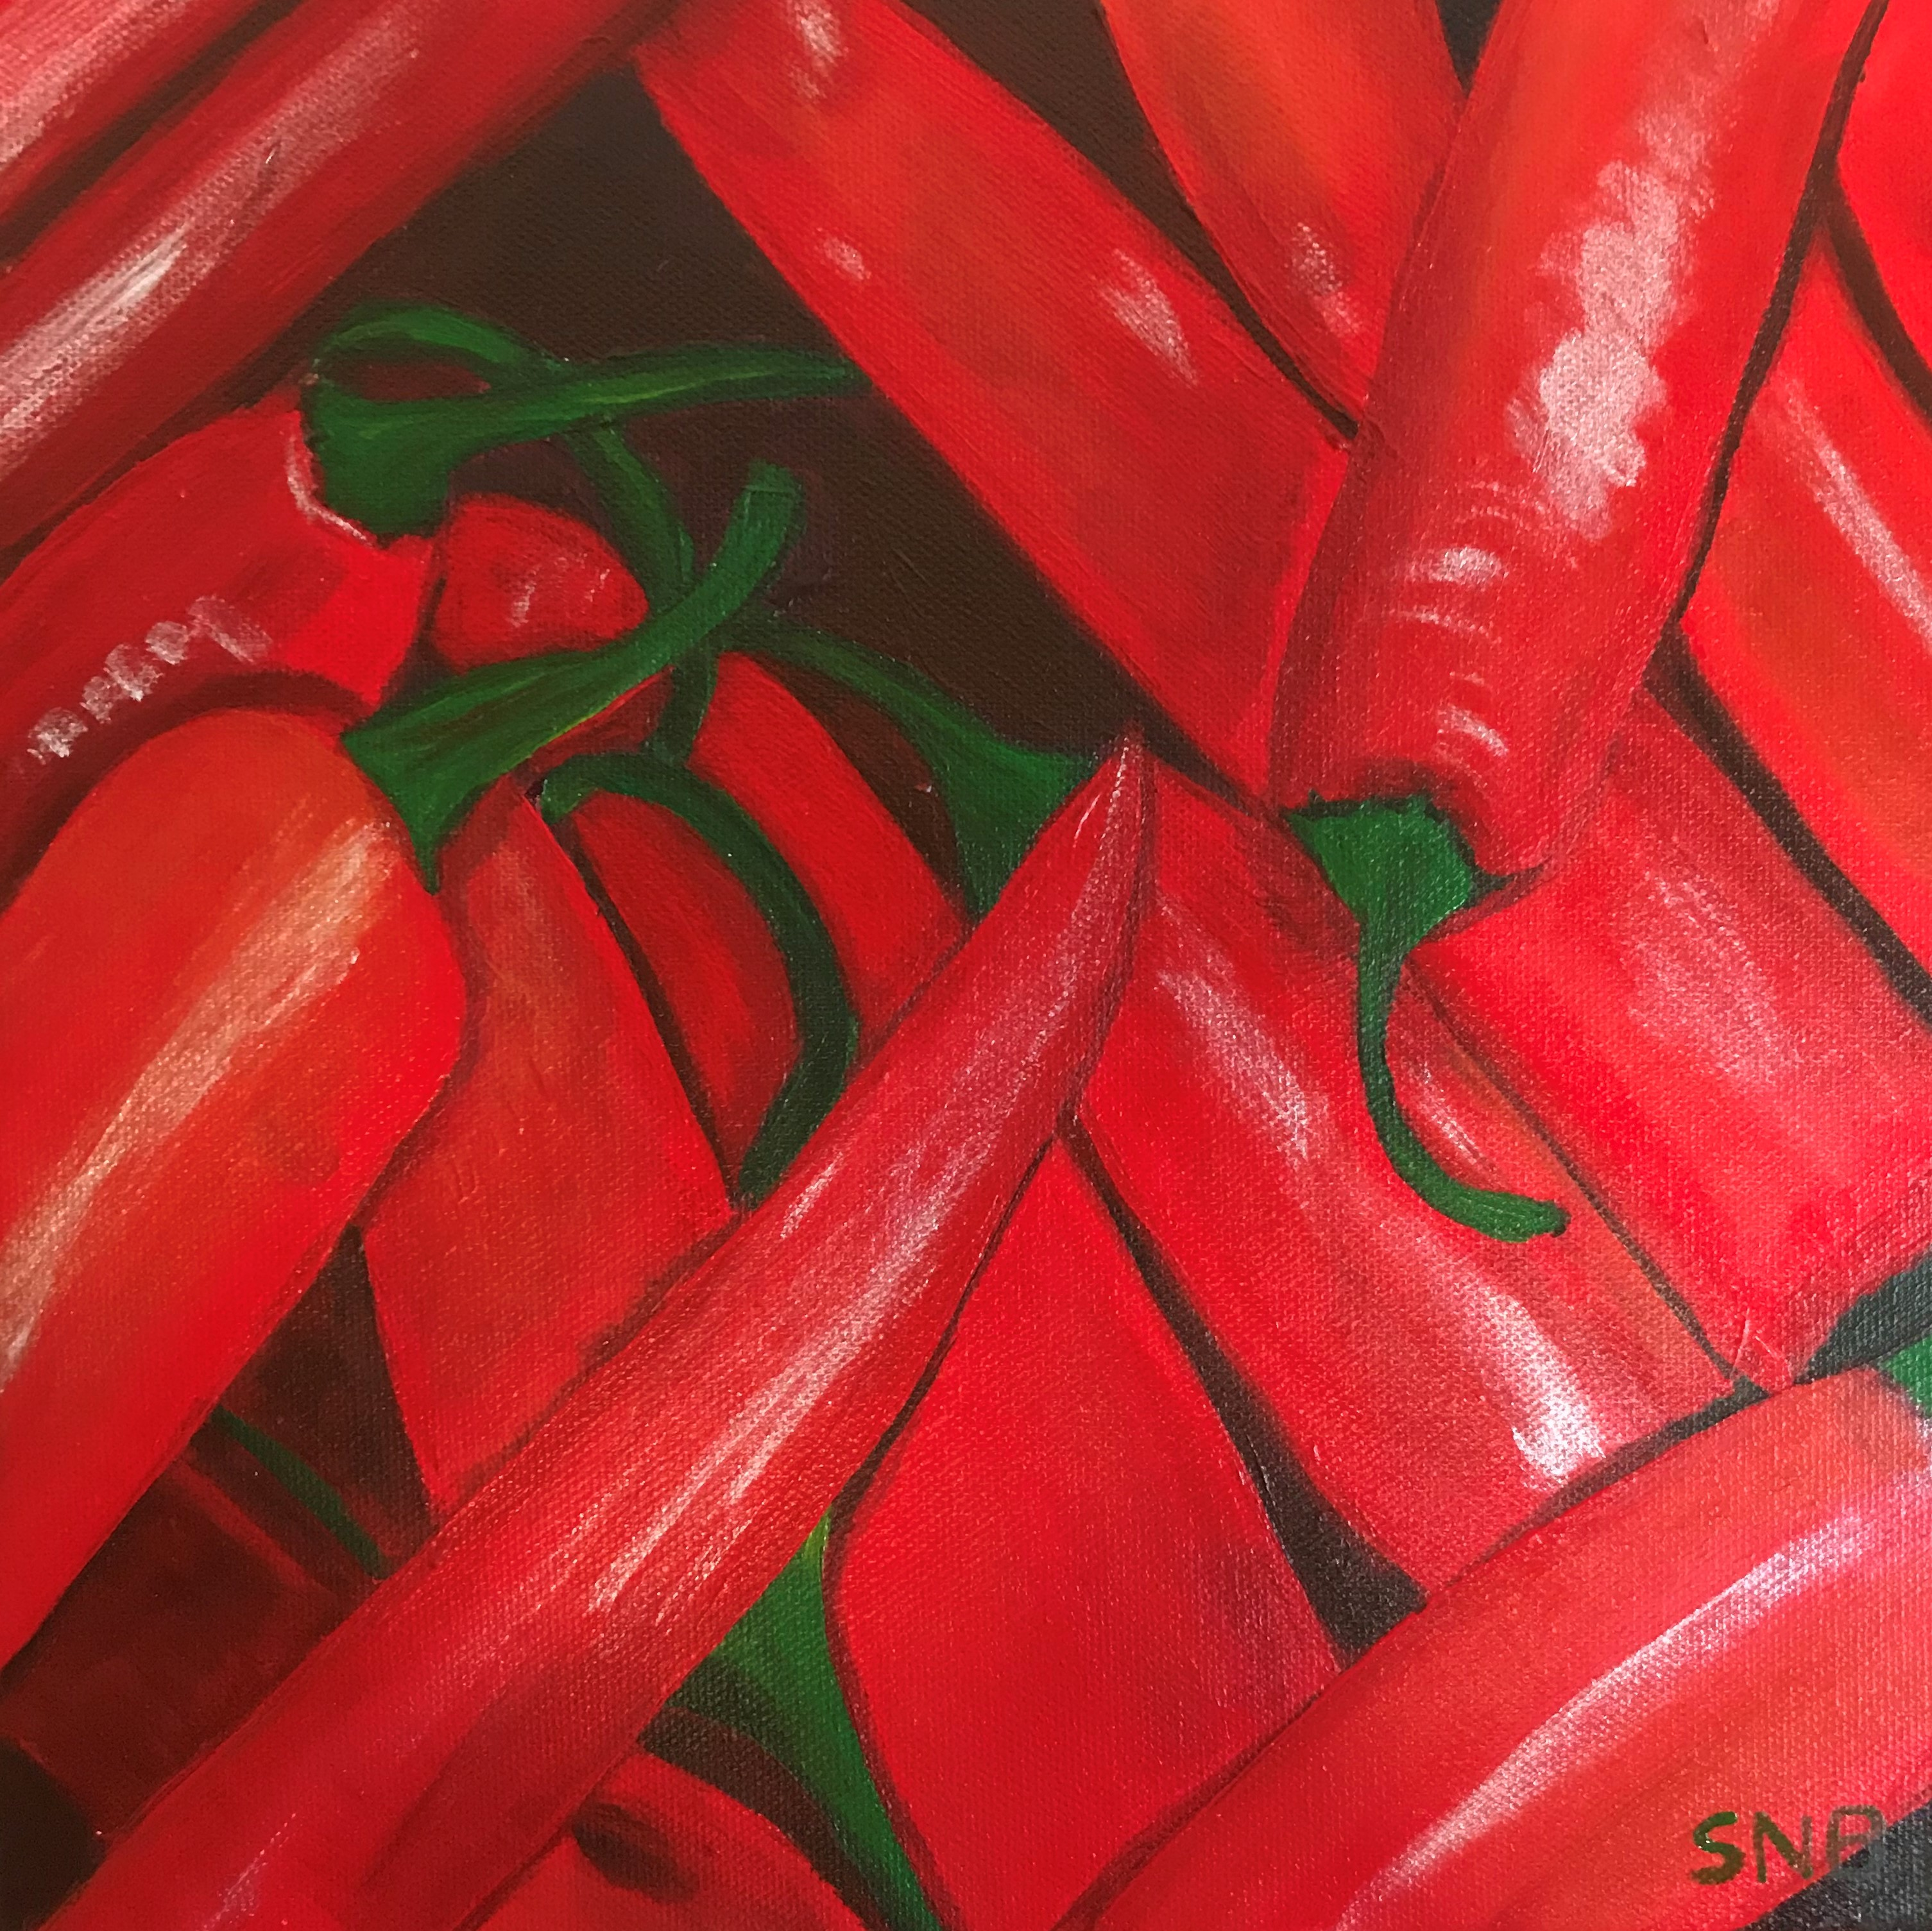 How hot do you want it? a 10 x10 Acrylic Painting on Canvas. The Painting is of red hot chili peppers arranged randomly